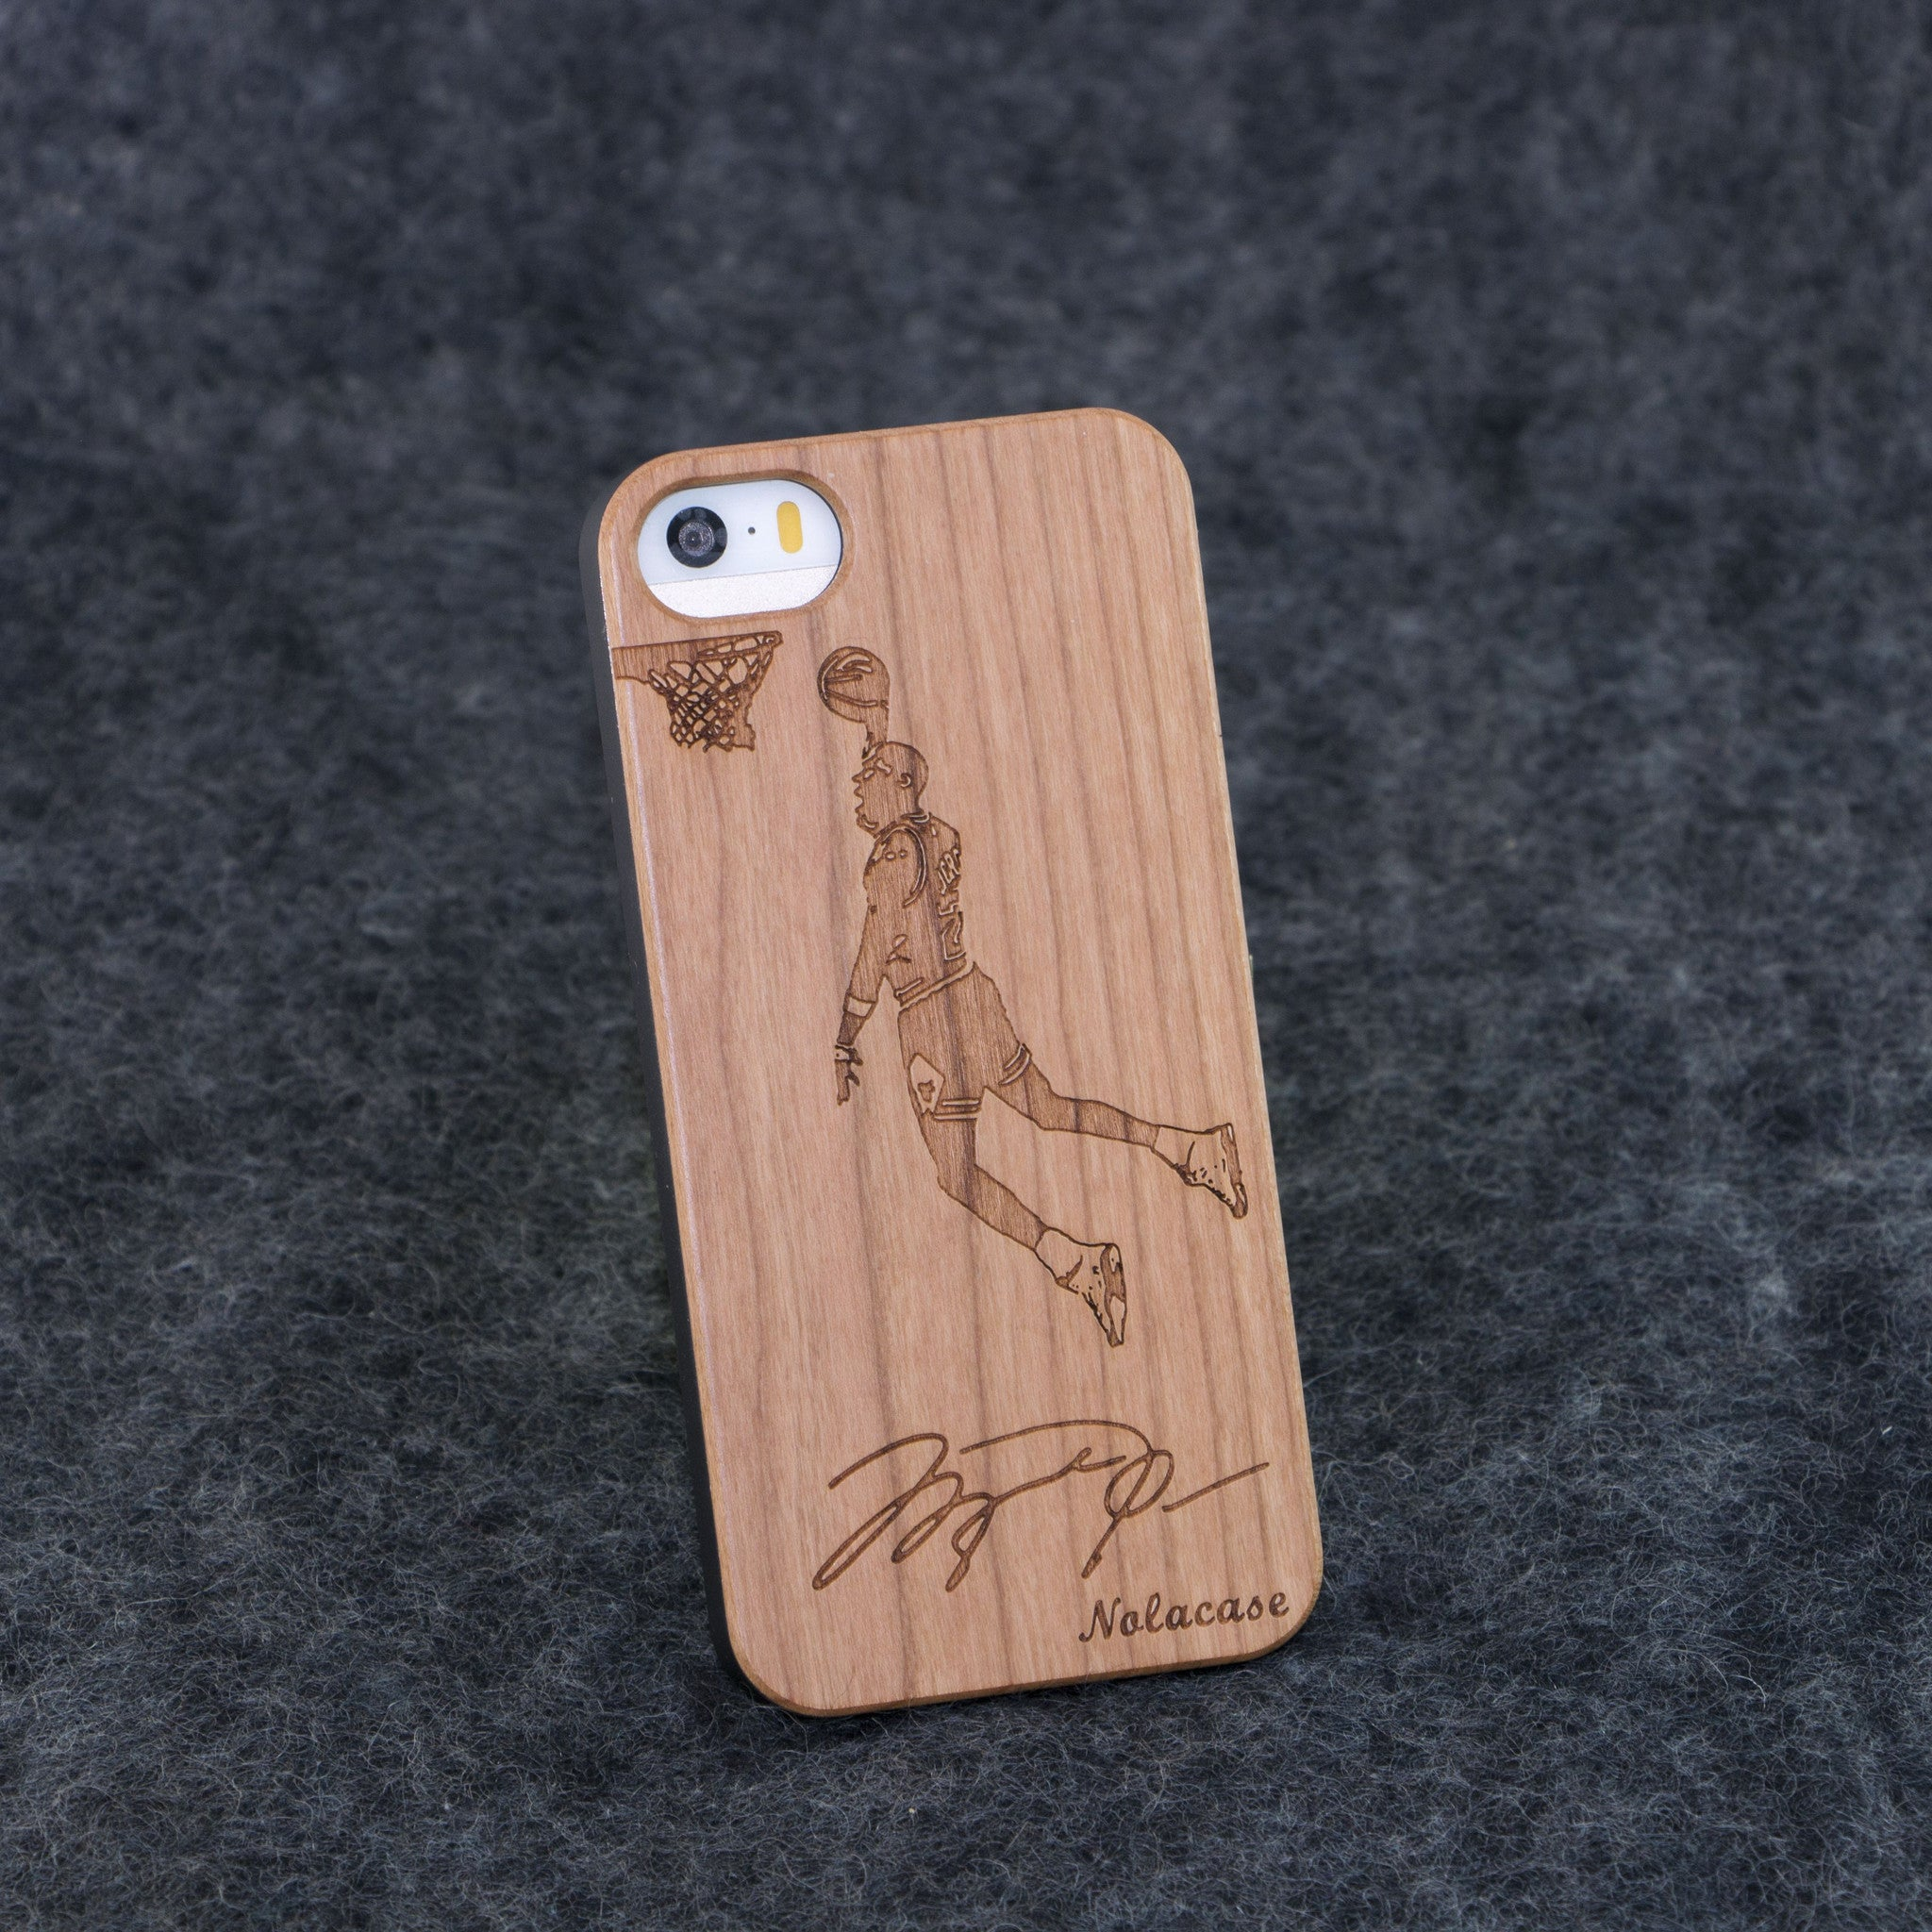 iPhone 5 / 5S Michael Jordan Signature Slim Wood Case - NOLACASE